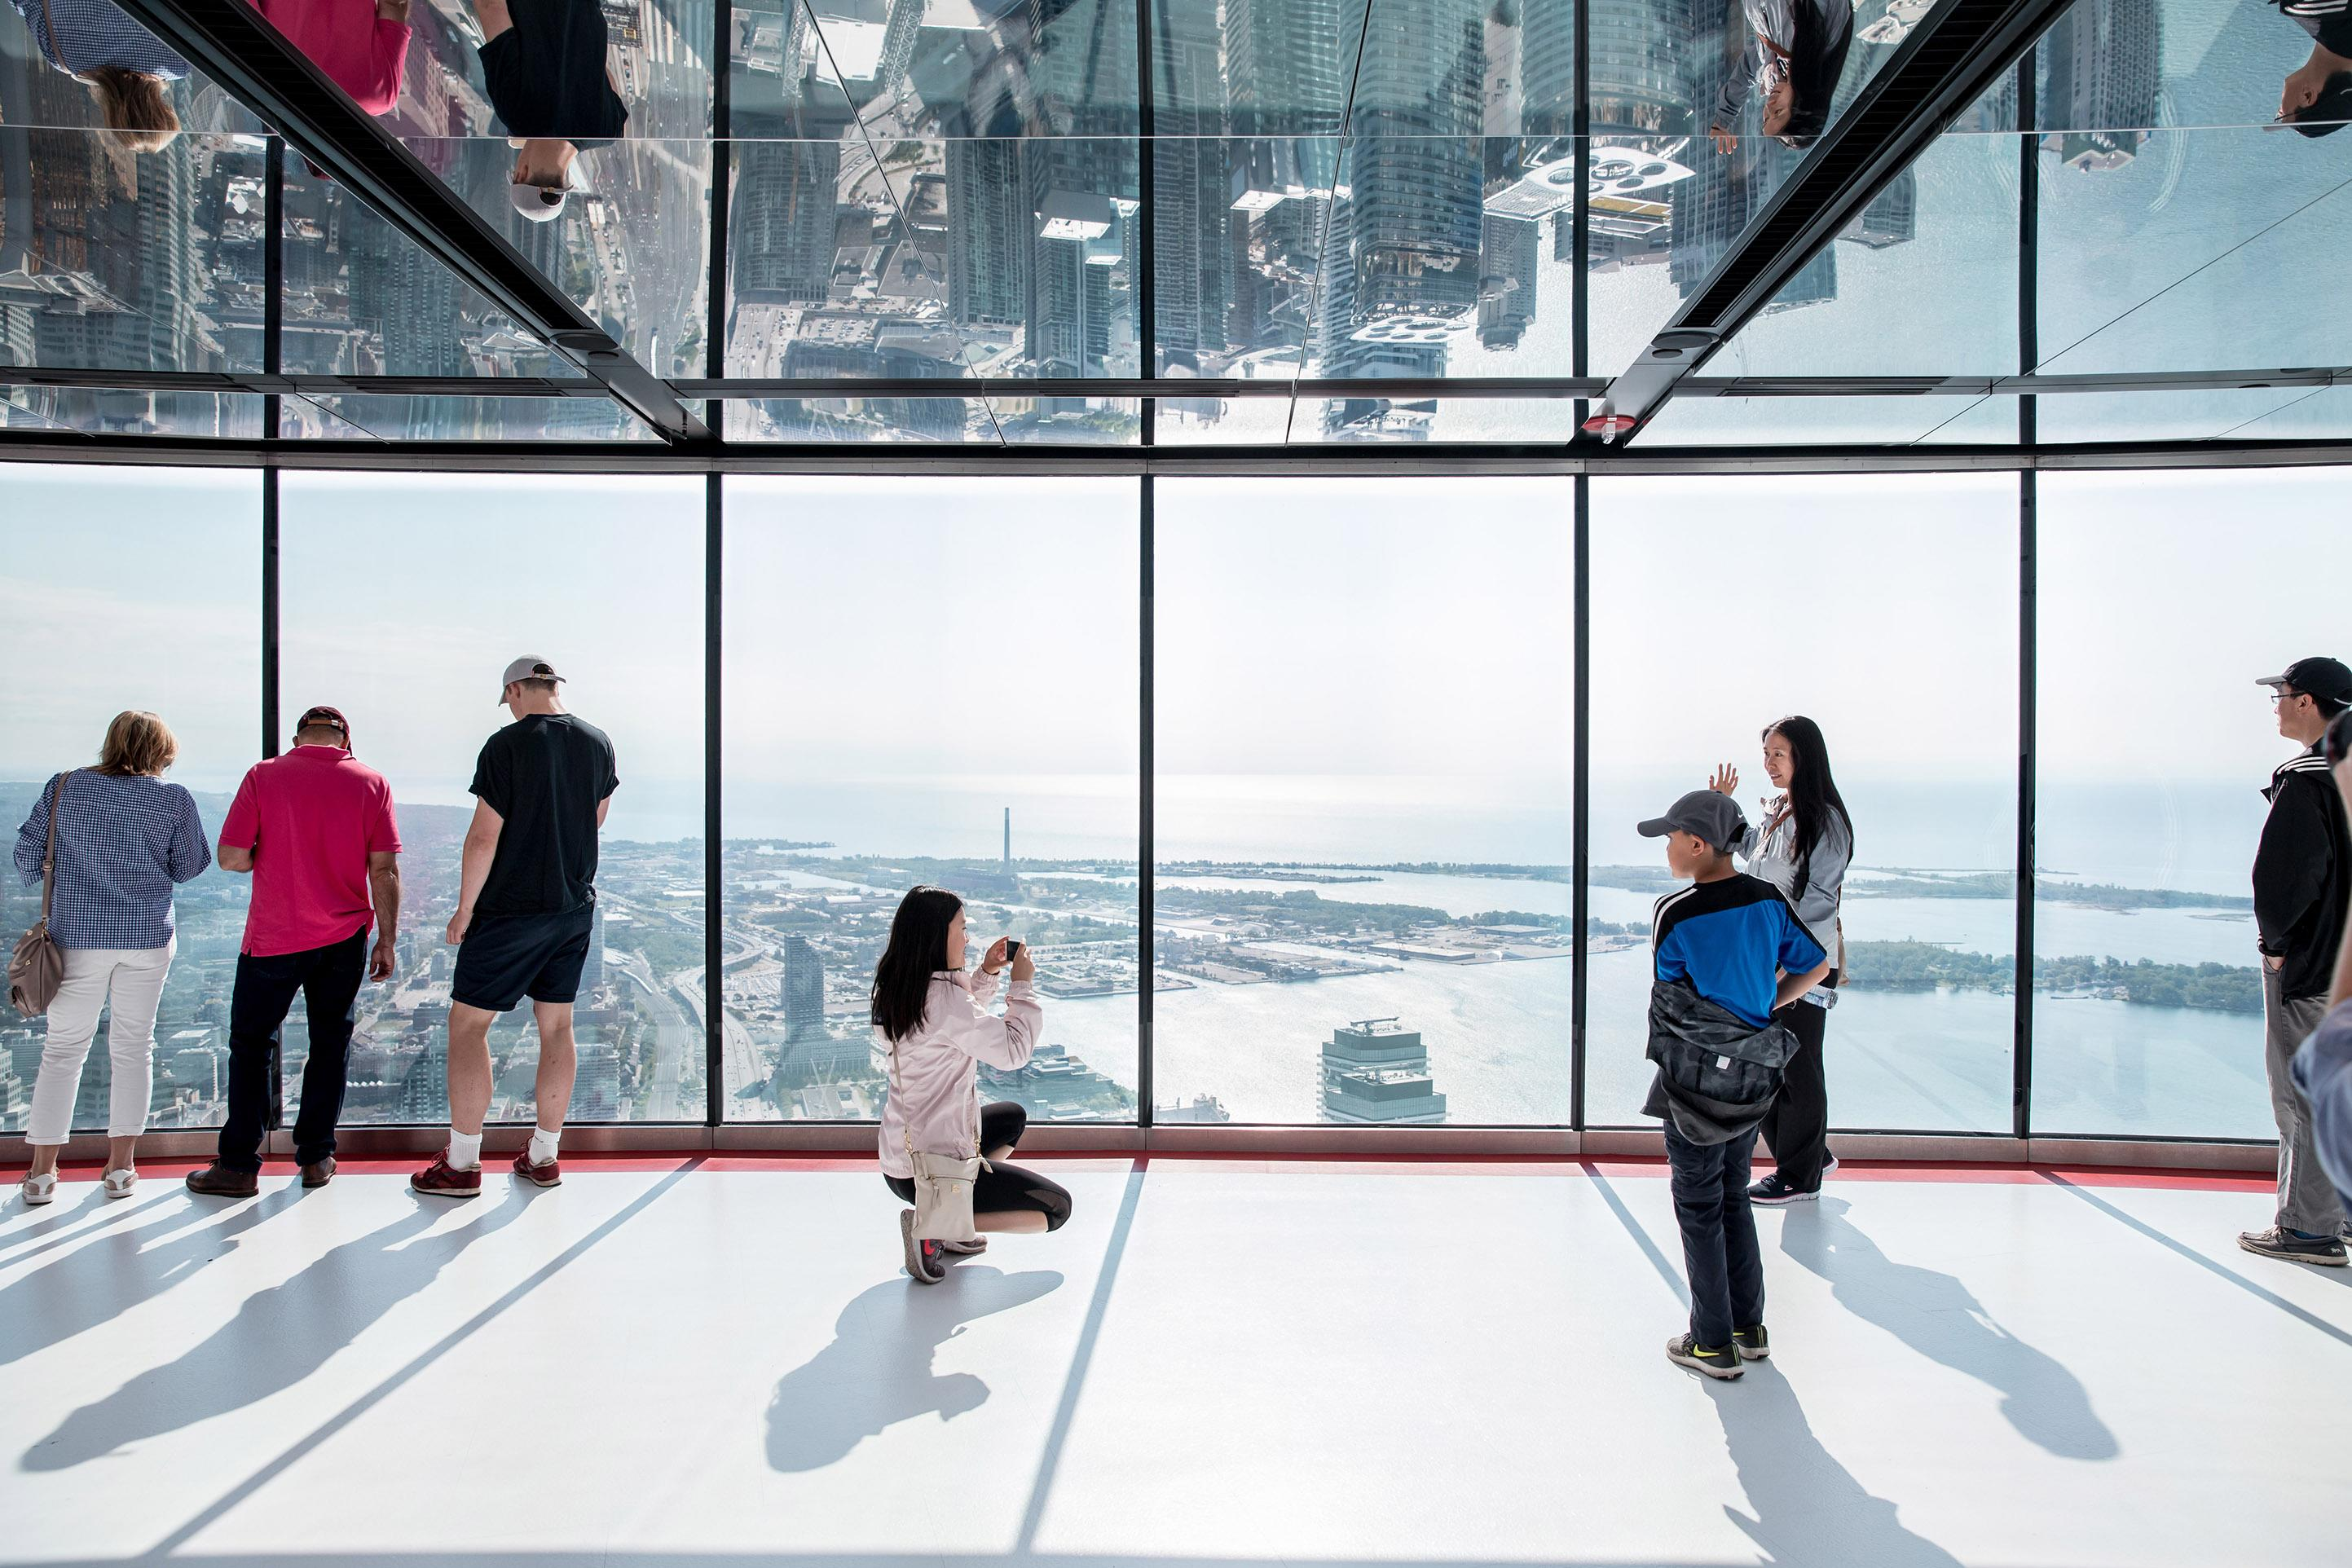 CN Tower shows off new $16 million upgrade